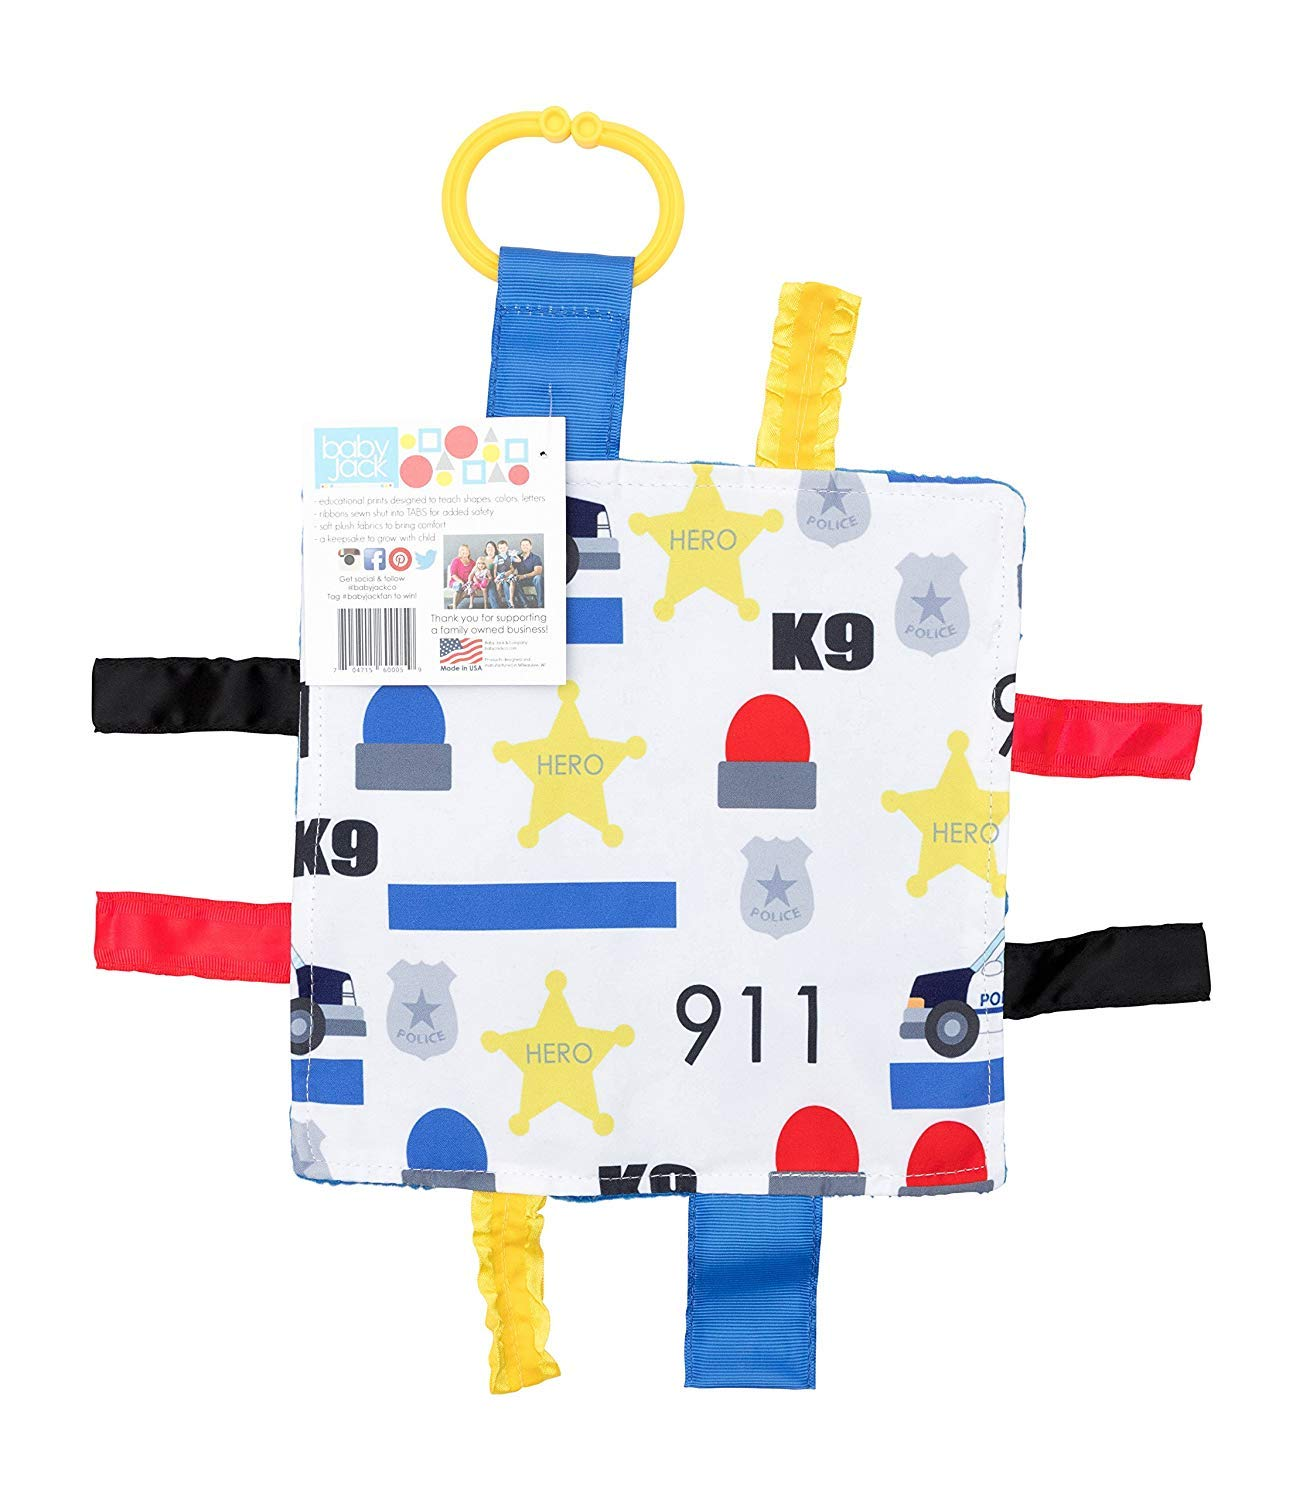 "Baby Sensory Crinkle & Teething Square Lovey Toy with Closed Ribbon Tags for Increased Stimulation: 8""X8""(Police)"